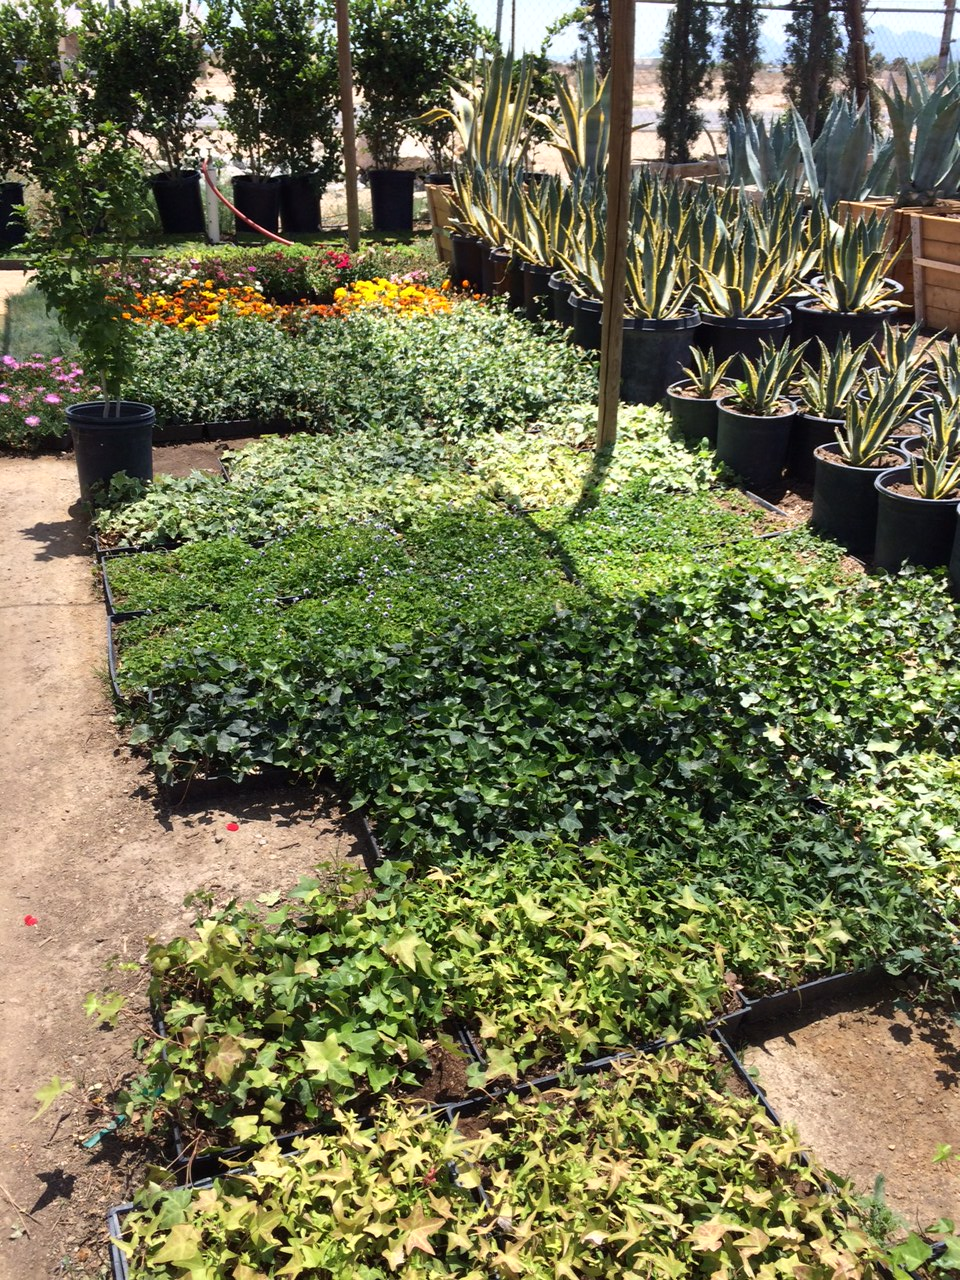 Nursery Landscape plants